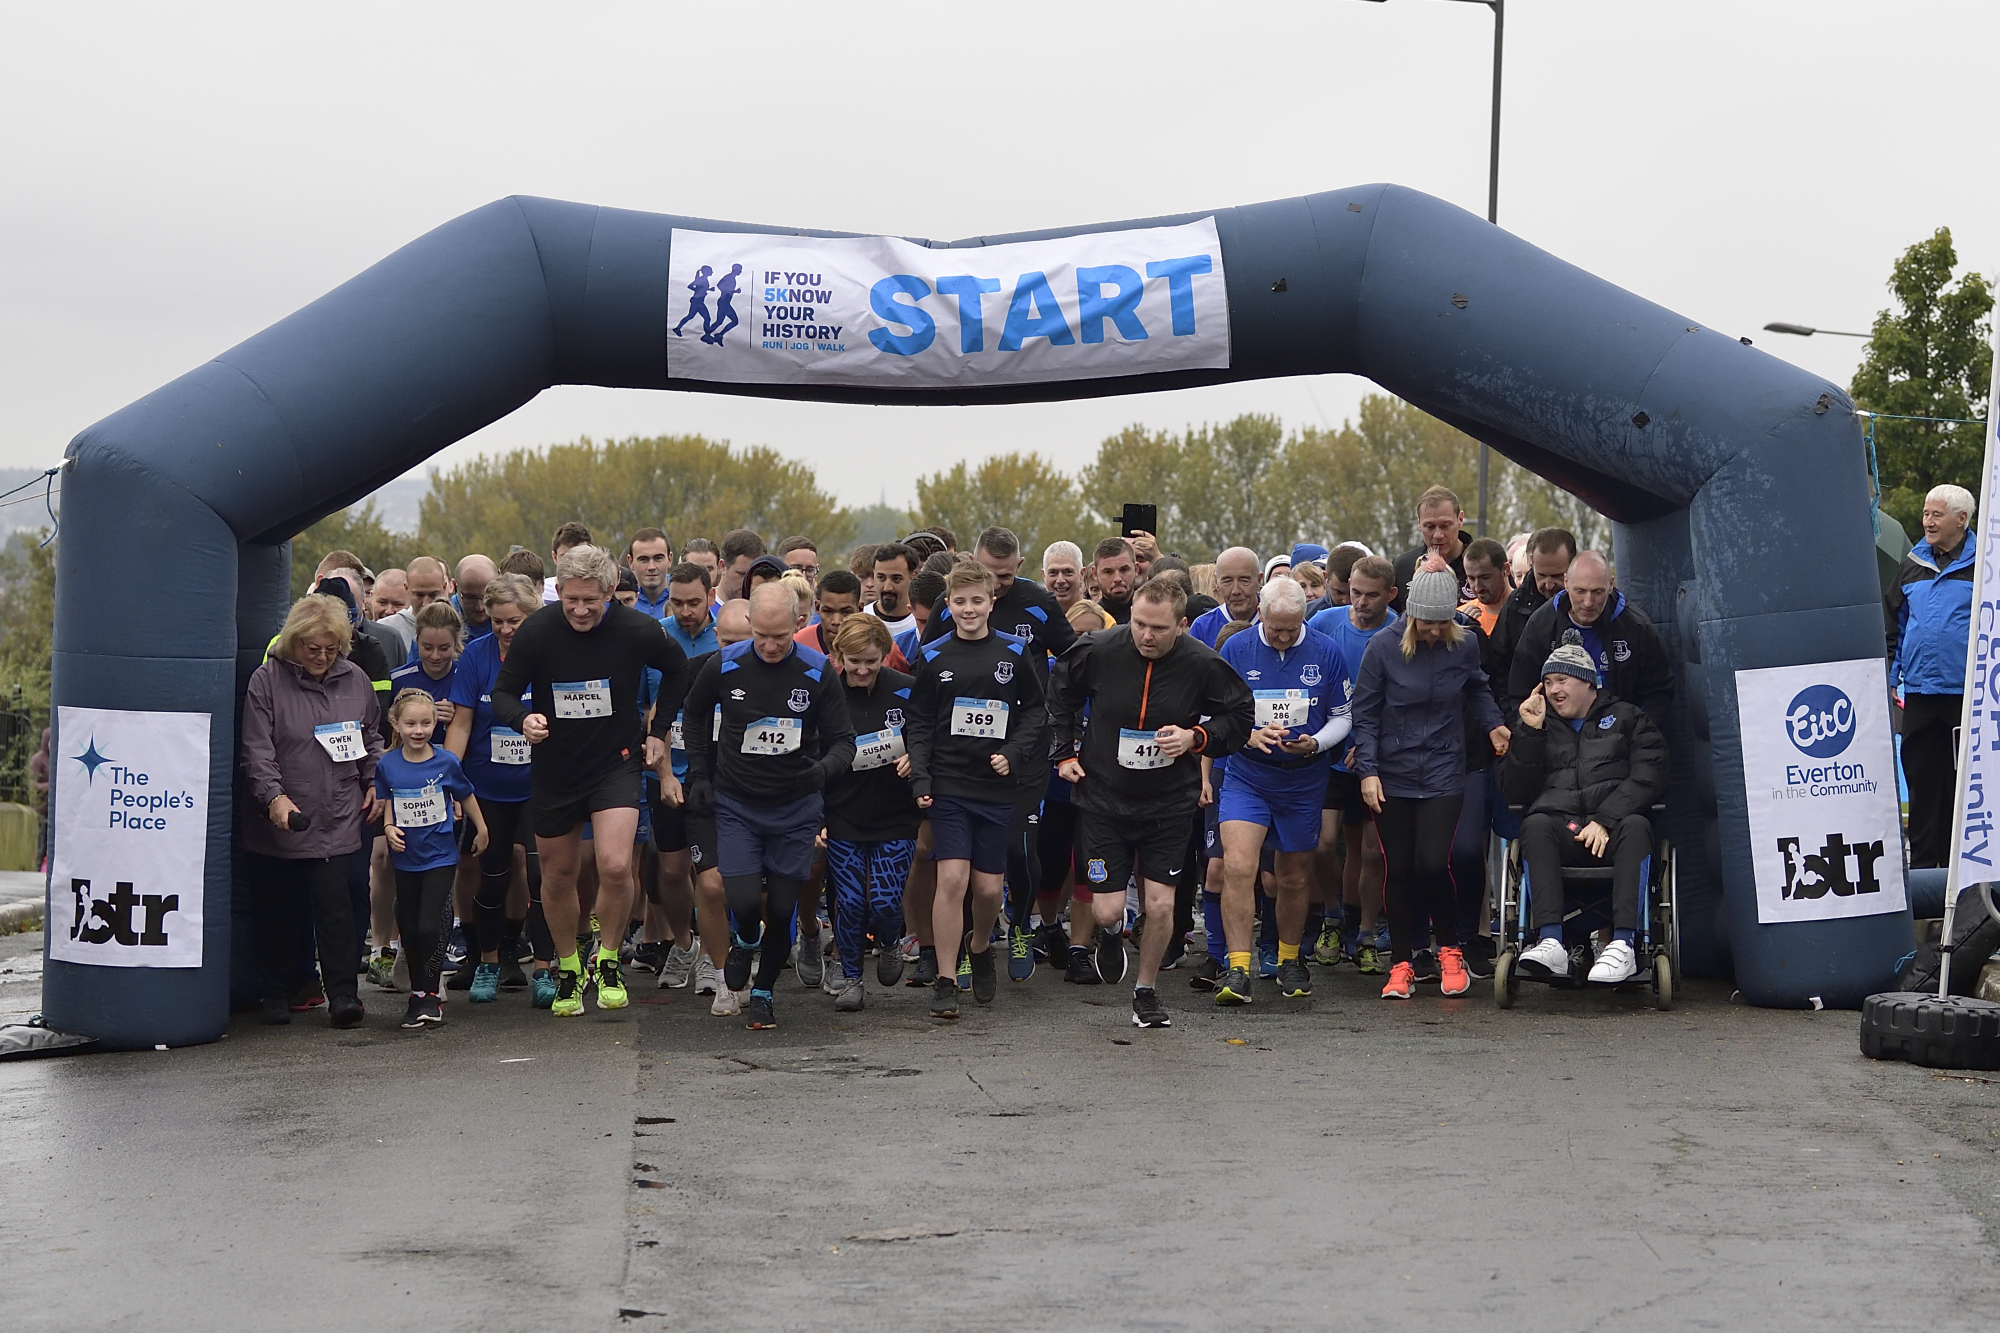 Families invited to sign up for fun run